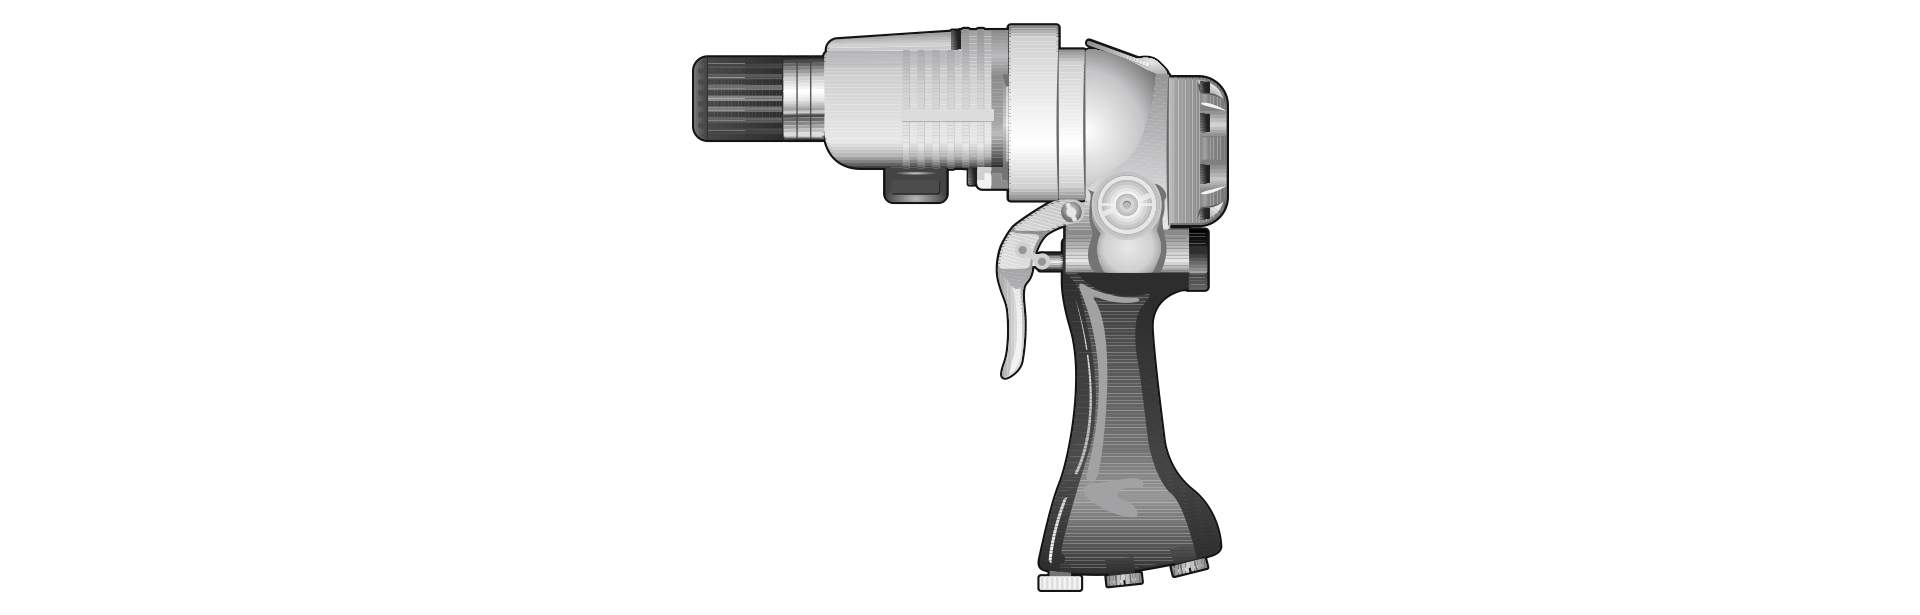 Image of a Impact Wrench